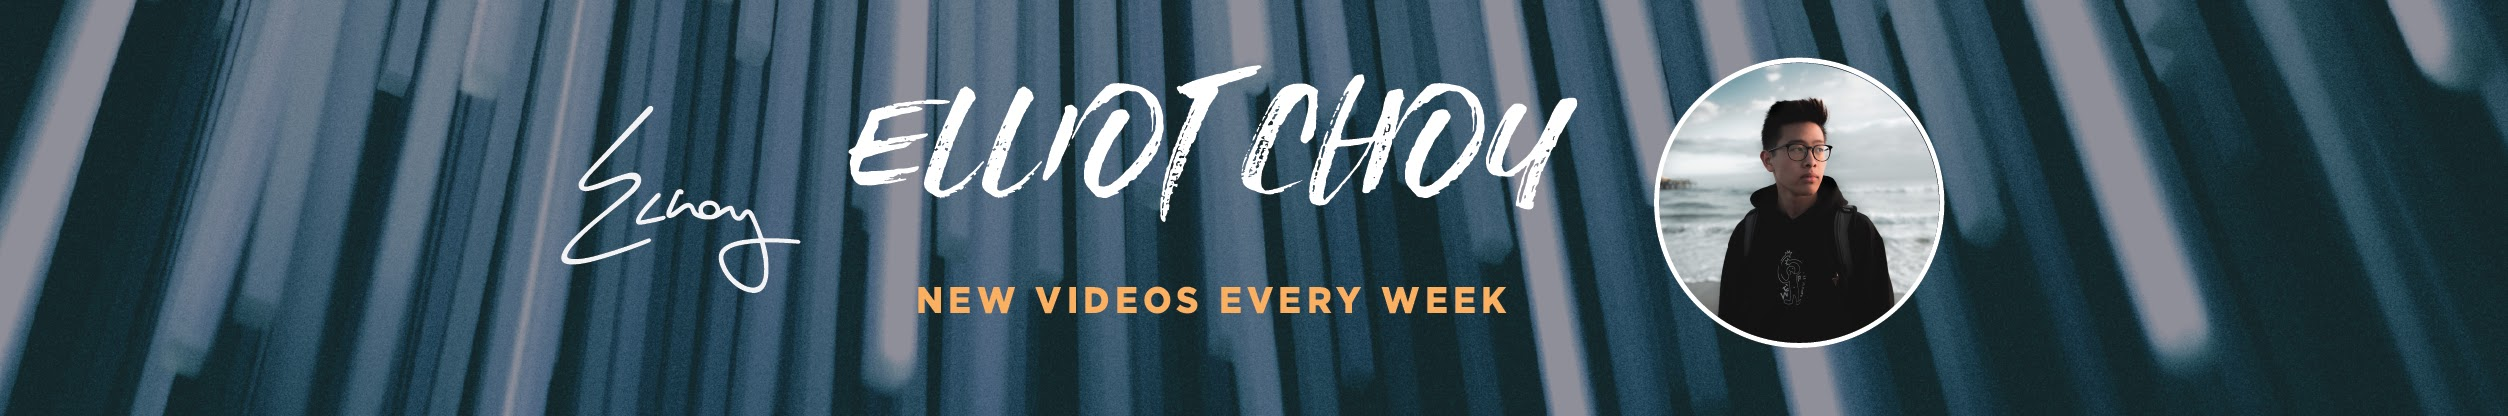 Elliot Choy Youtube Channel Analytics And Report Powered By Noxinfluencer Mobile I'm an influencer i'm a brand. elliot choy youtube channel analytics